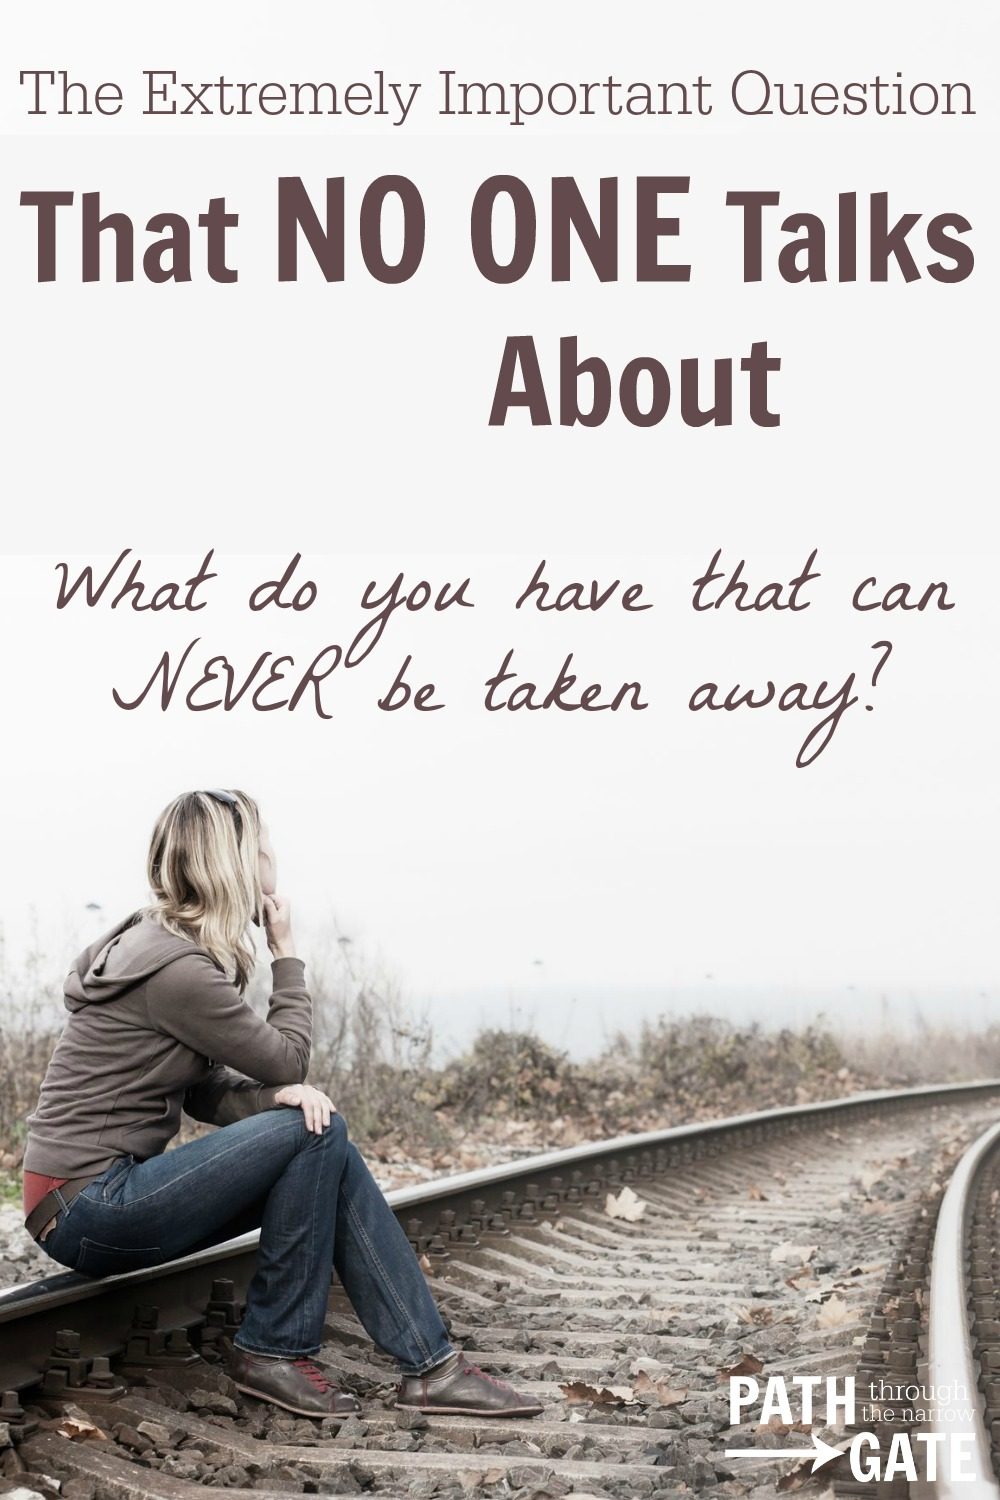 This question has the power to change the way that we look at our lives. It has the power to search our souls. It offers both hope and conviction.|The Extremely Important Question That NO ONE Talks About